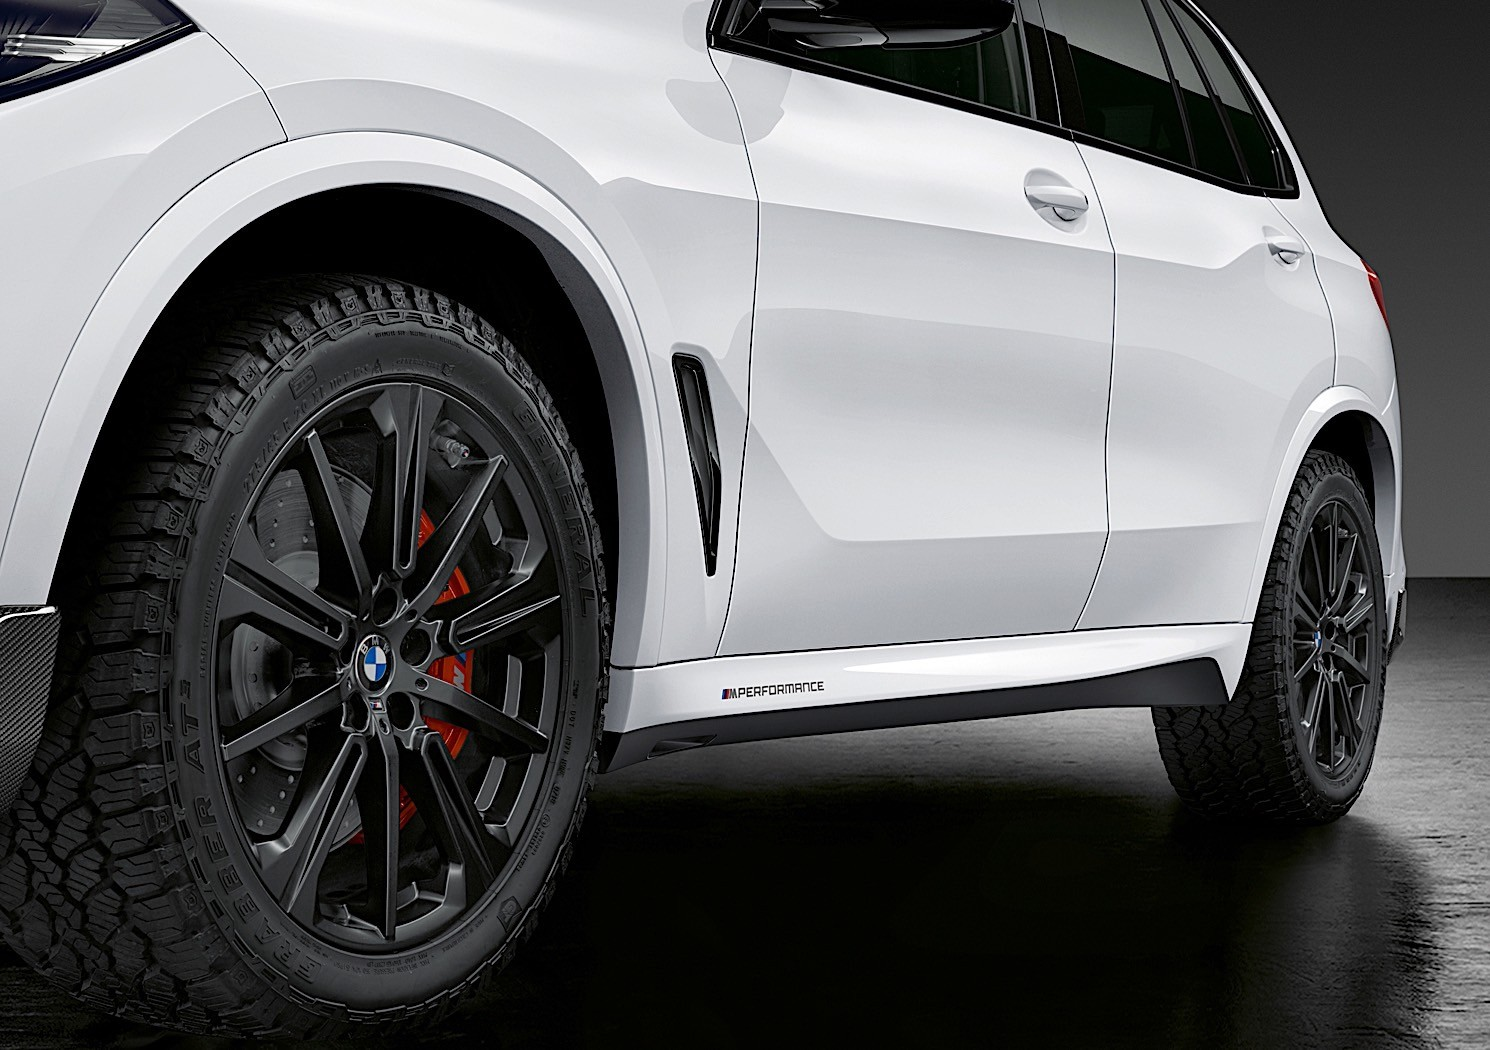 2019 Bmw X5 M Performance Parts Are All About Driving